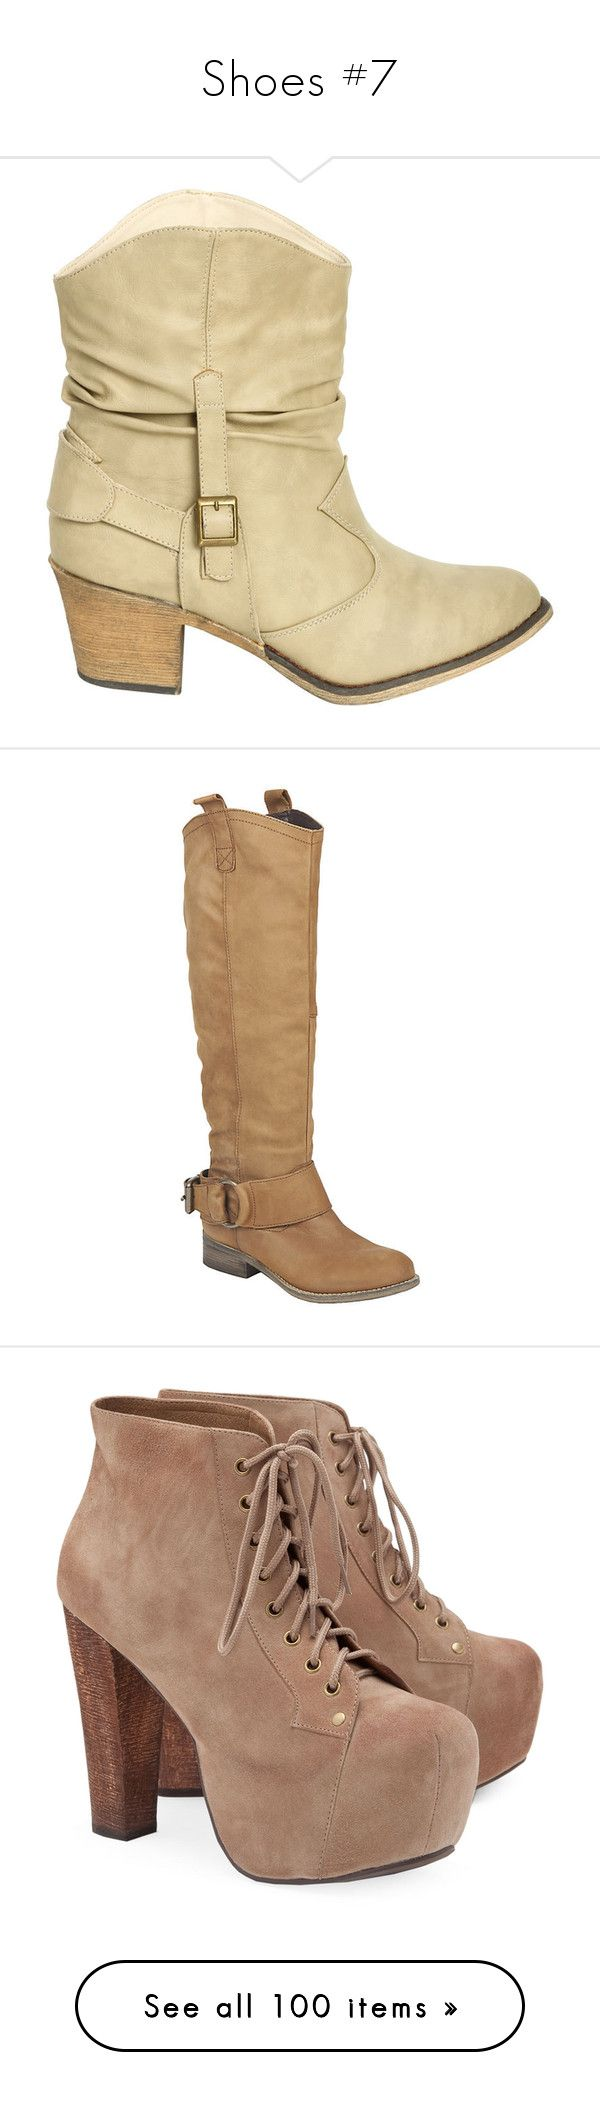 """""""Shoes #7"""" by taborbot ❤ liked on Polyvore featuring shoes, boots, zapatos, sapatos, wet seal shoes, stacked heel boots, short boots, wet seal, mid-heel boots and cognac leather"""